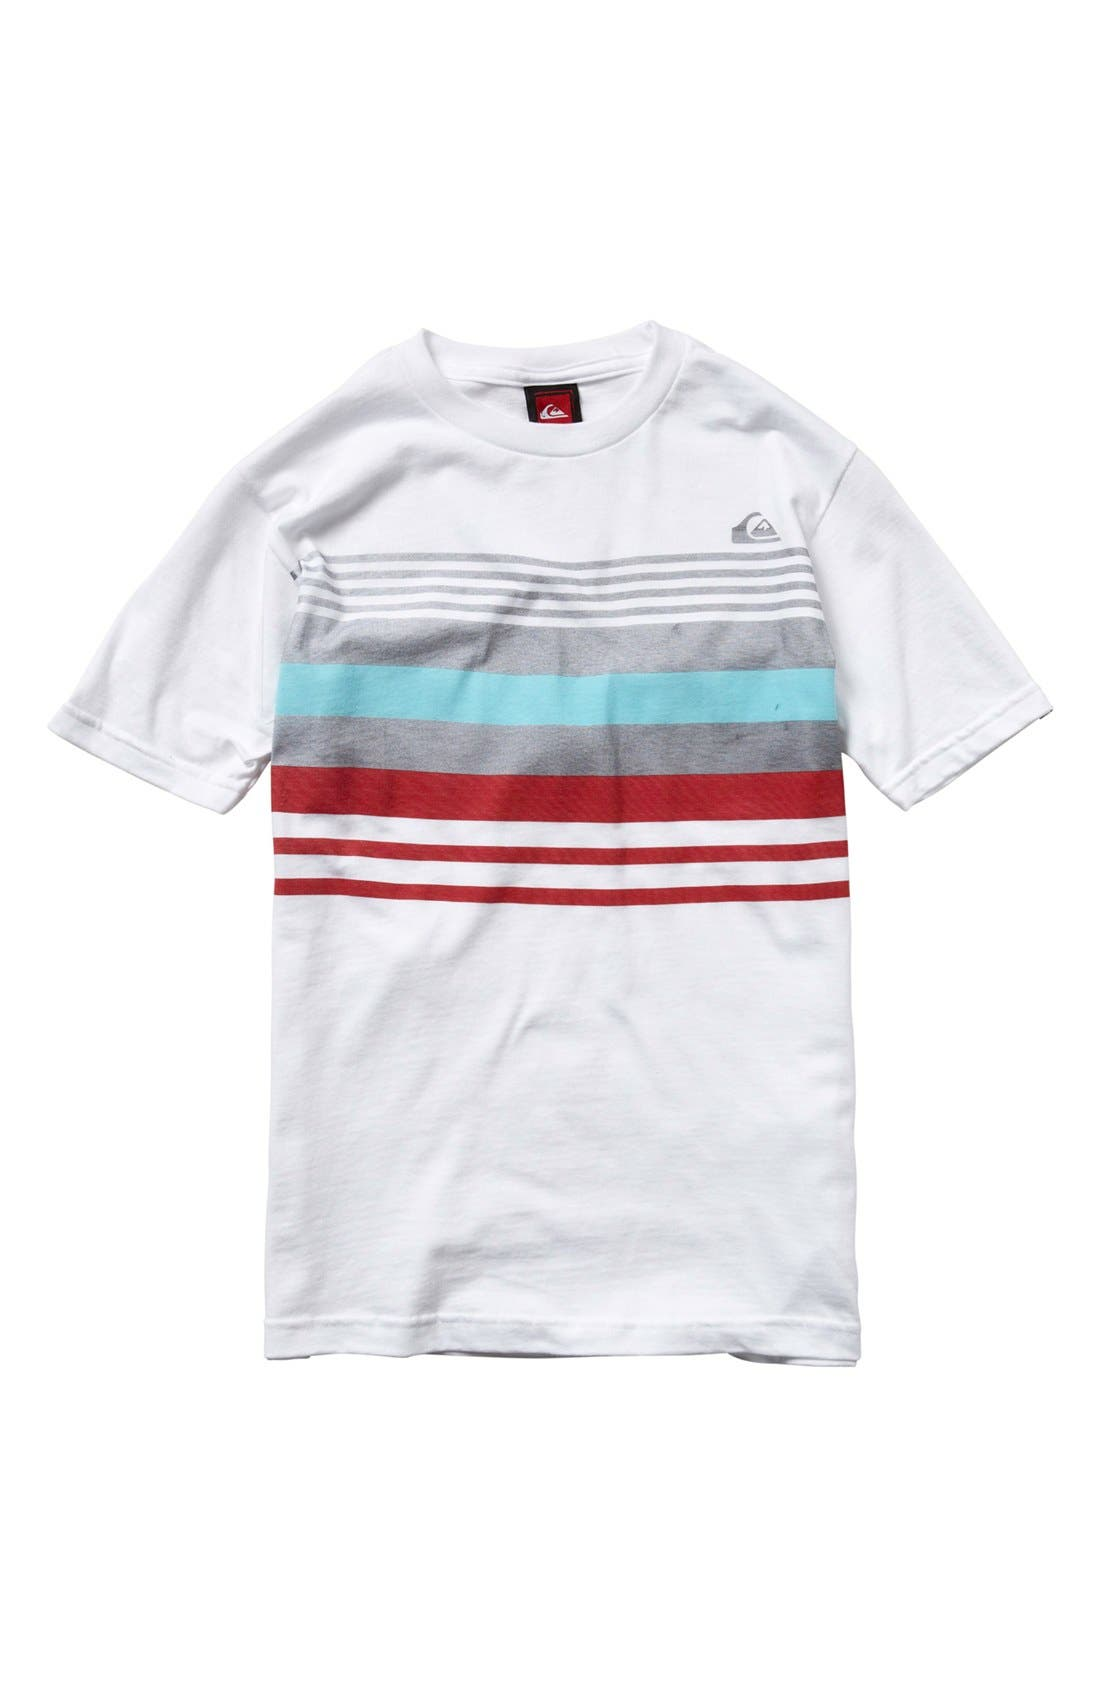 Alternate Image 1 Selected - Quiksilver 'OC Coastal' T-Shirt (Little Boys)